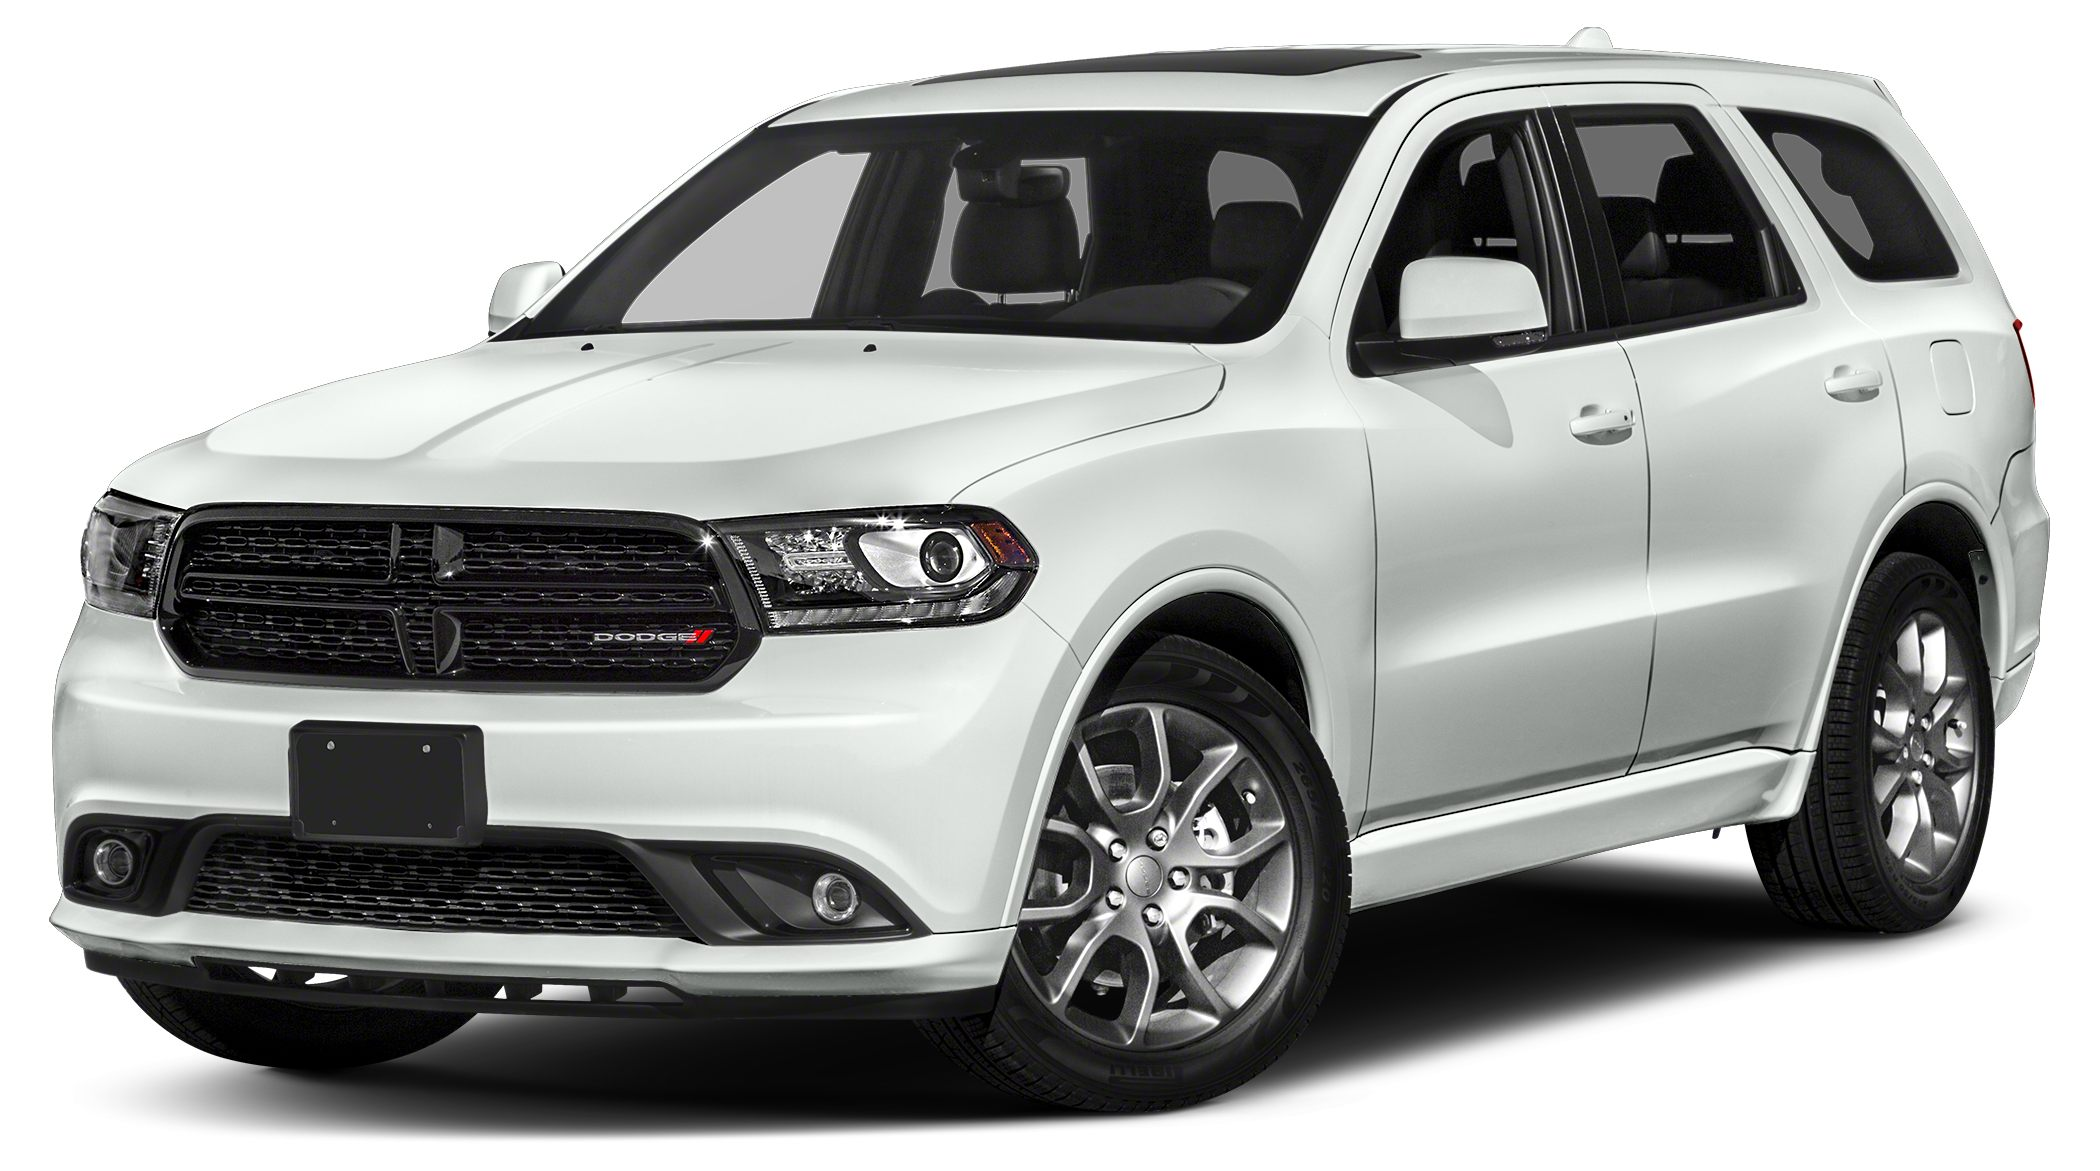 2018 Dodge Durango RT SPECIAL ONLINE PRICE INCLUDES 1000 IN REBATES THAT ALL CUSTOMERS QUALIFY